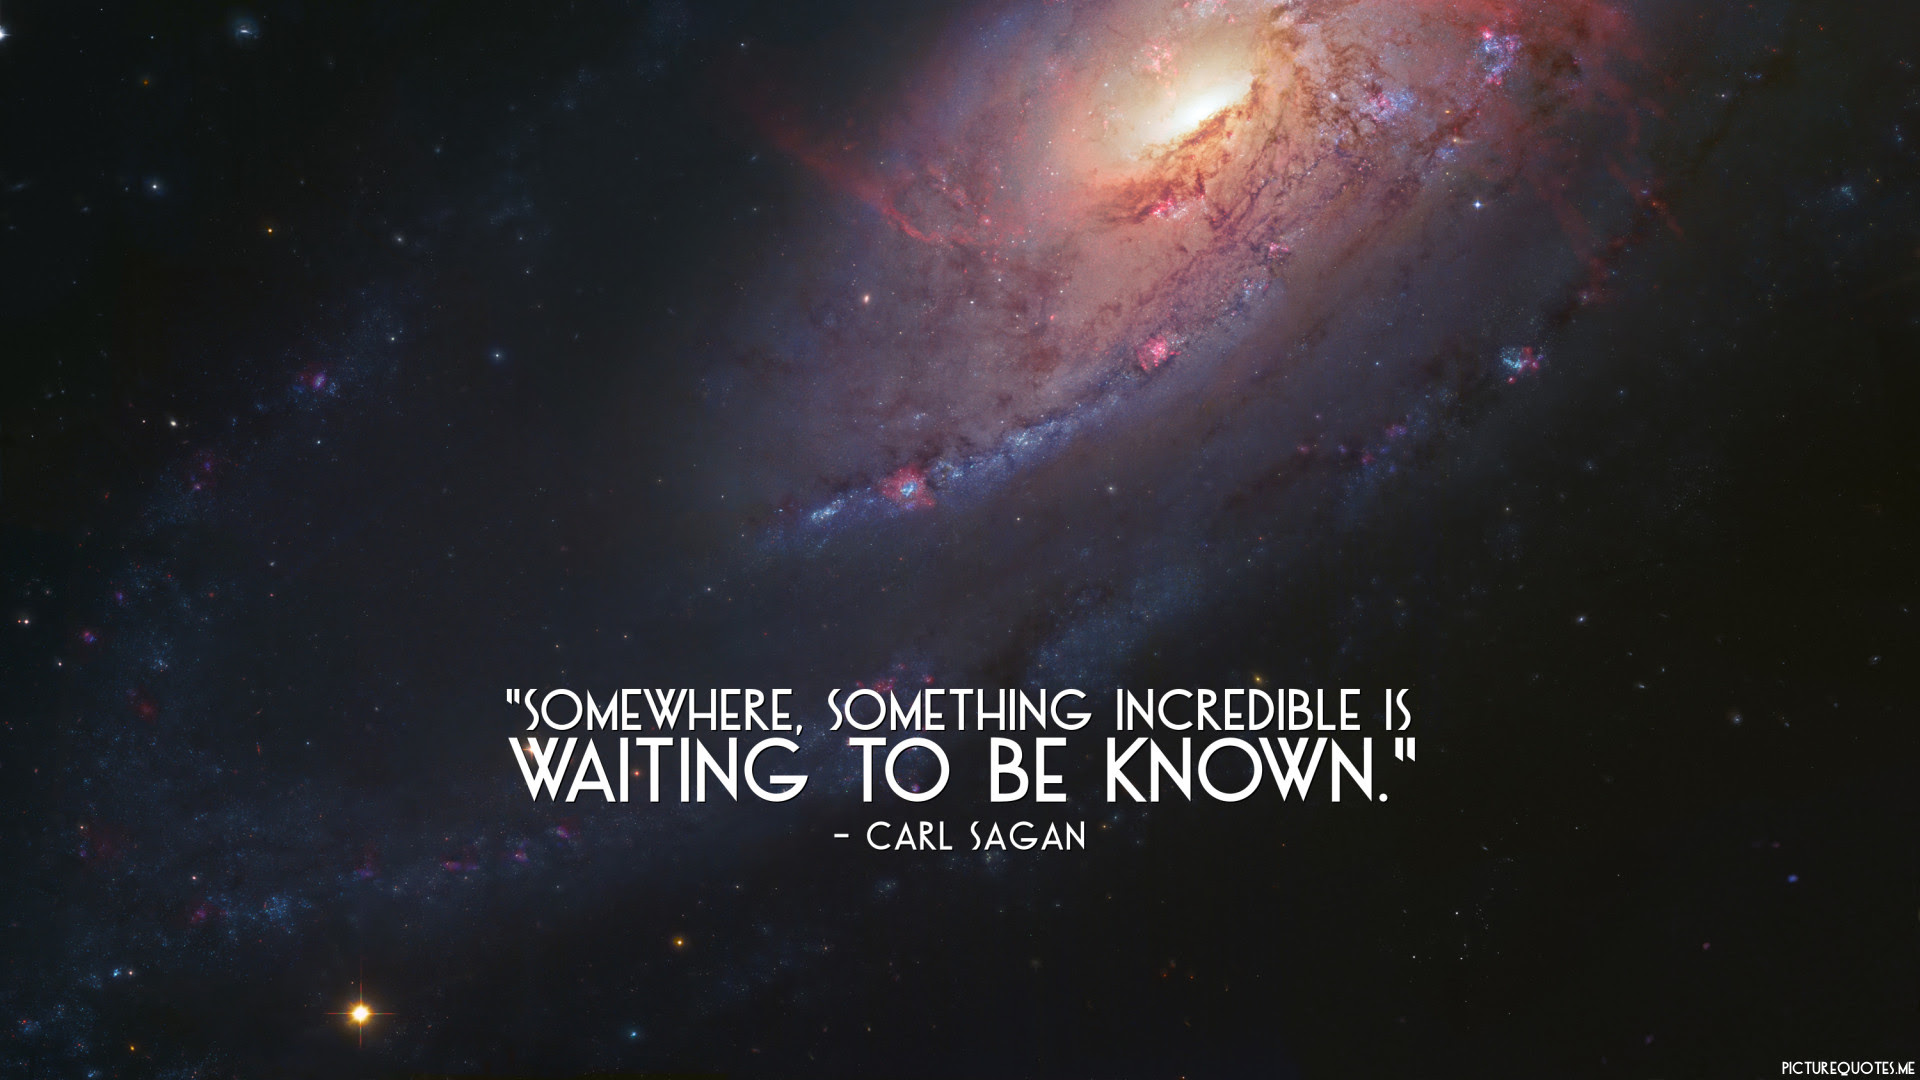 Somewhere Something Incredible Is Waiting To Be Known Carl Sagan